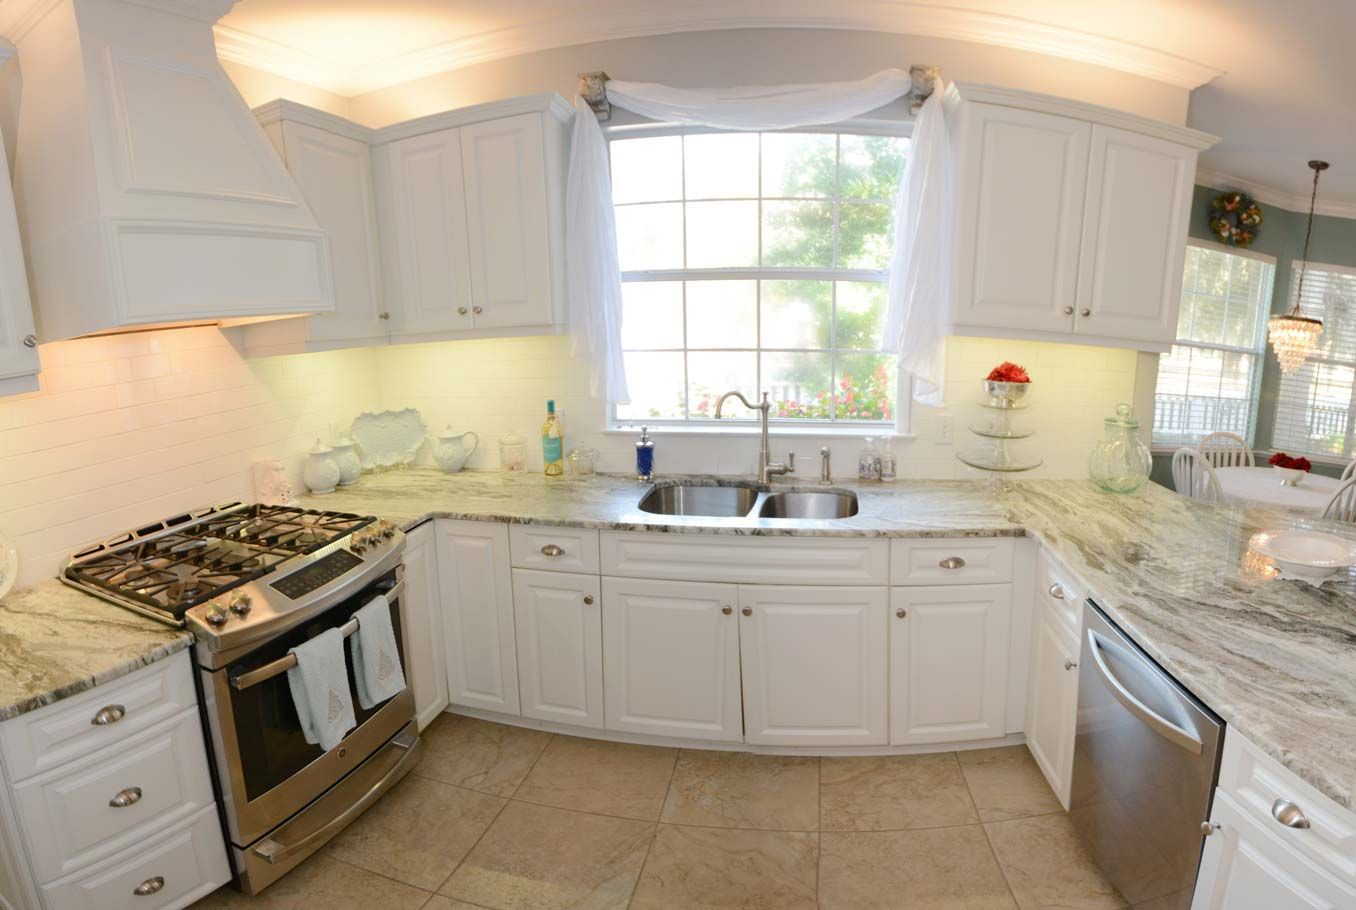 this is a remodeled kitchen hci did in gainesville fl the kitchen features white